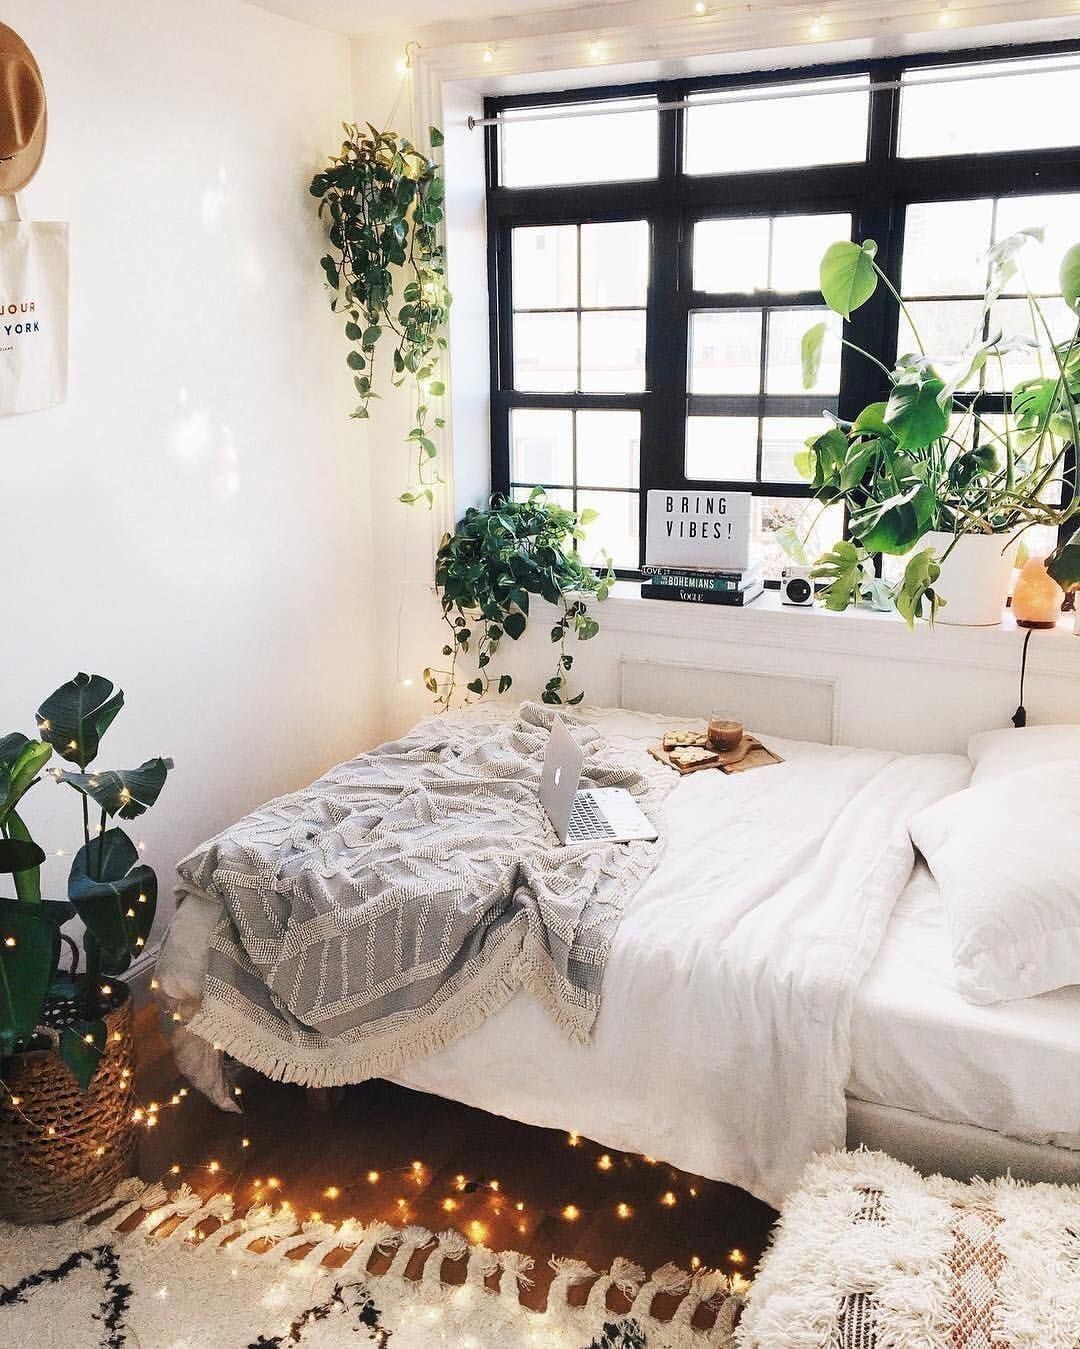 37 Urban Outfitters Bedroom Ideas With Images Urban Outfitters